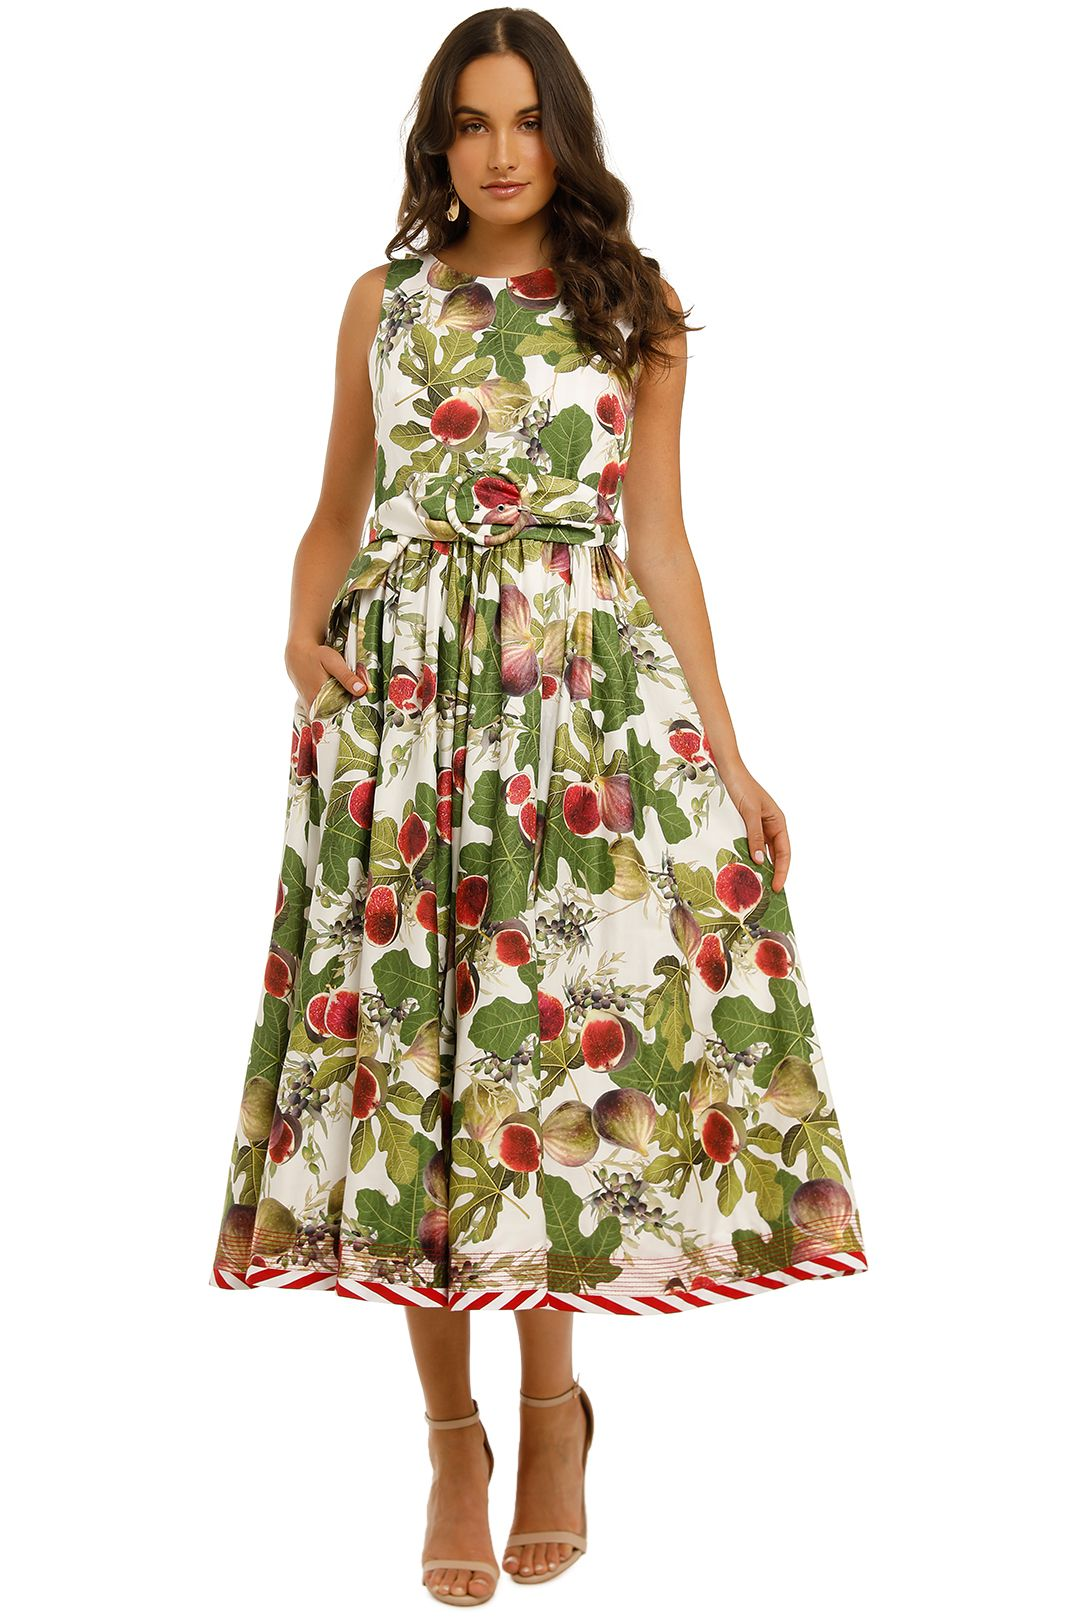 Trelise-Cooper-Bow-Me-Away-Dress-White-Fig-Front